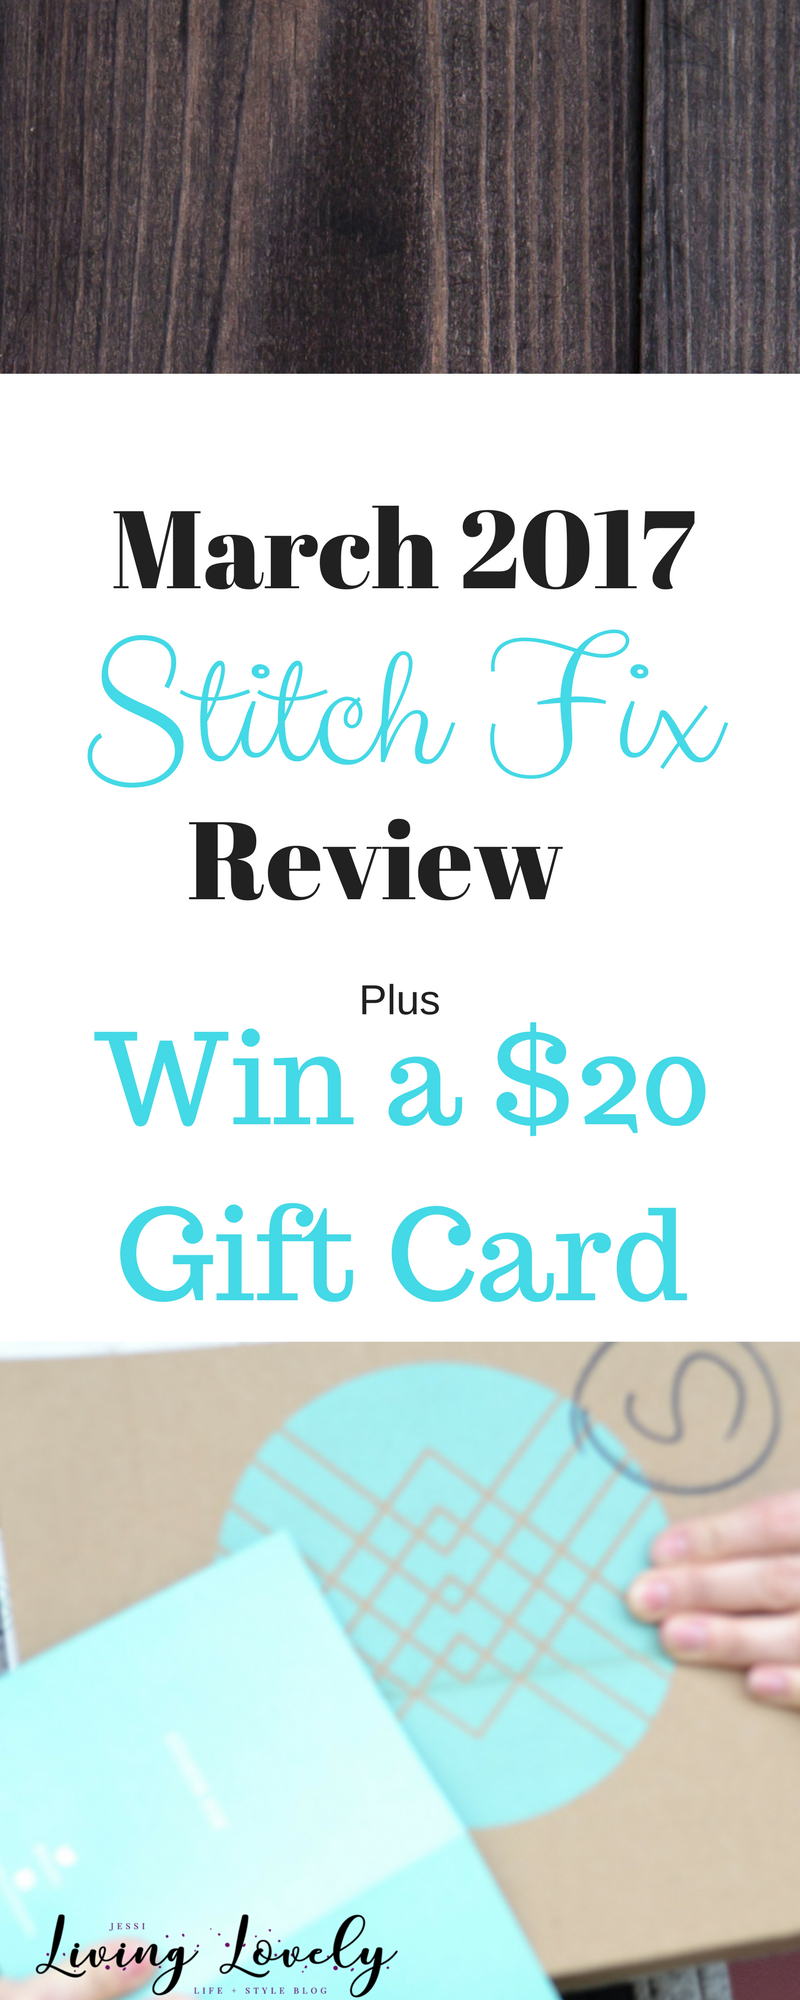 See what cute items I got in my March 2017 Stitch Fix (box #20 for me!) Also enter to win a $20 Stitch Fix Gift Card